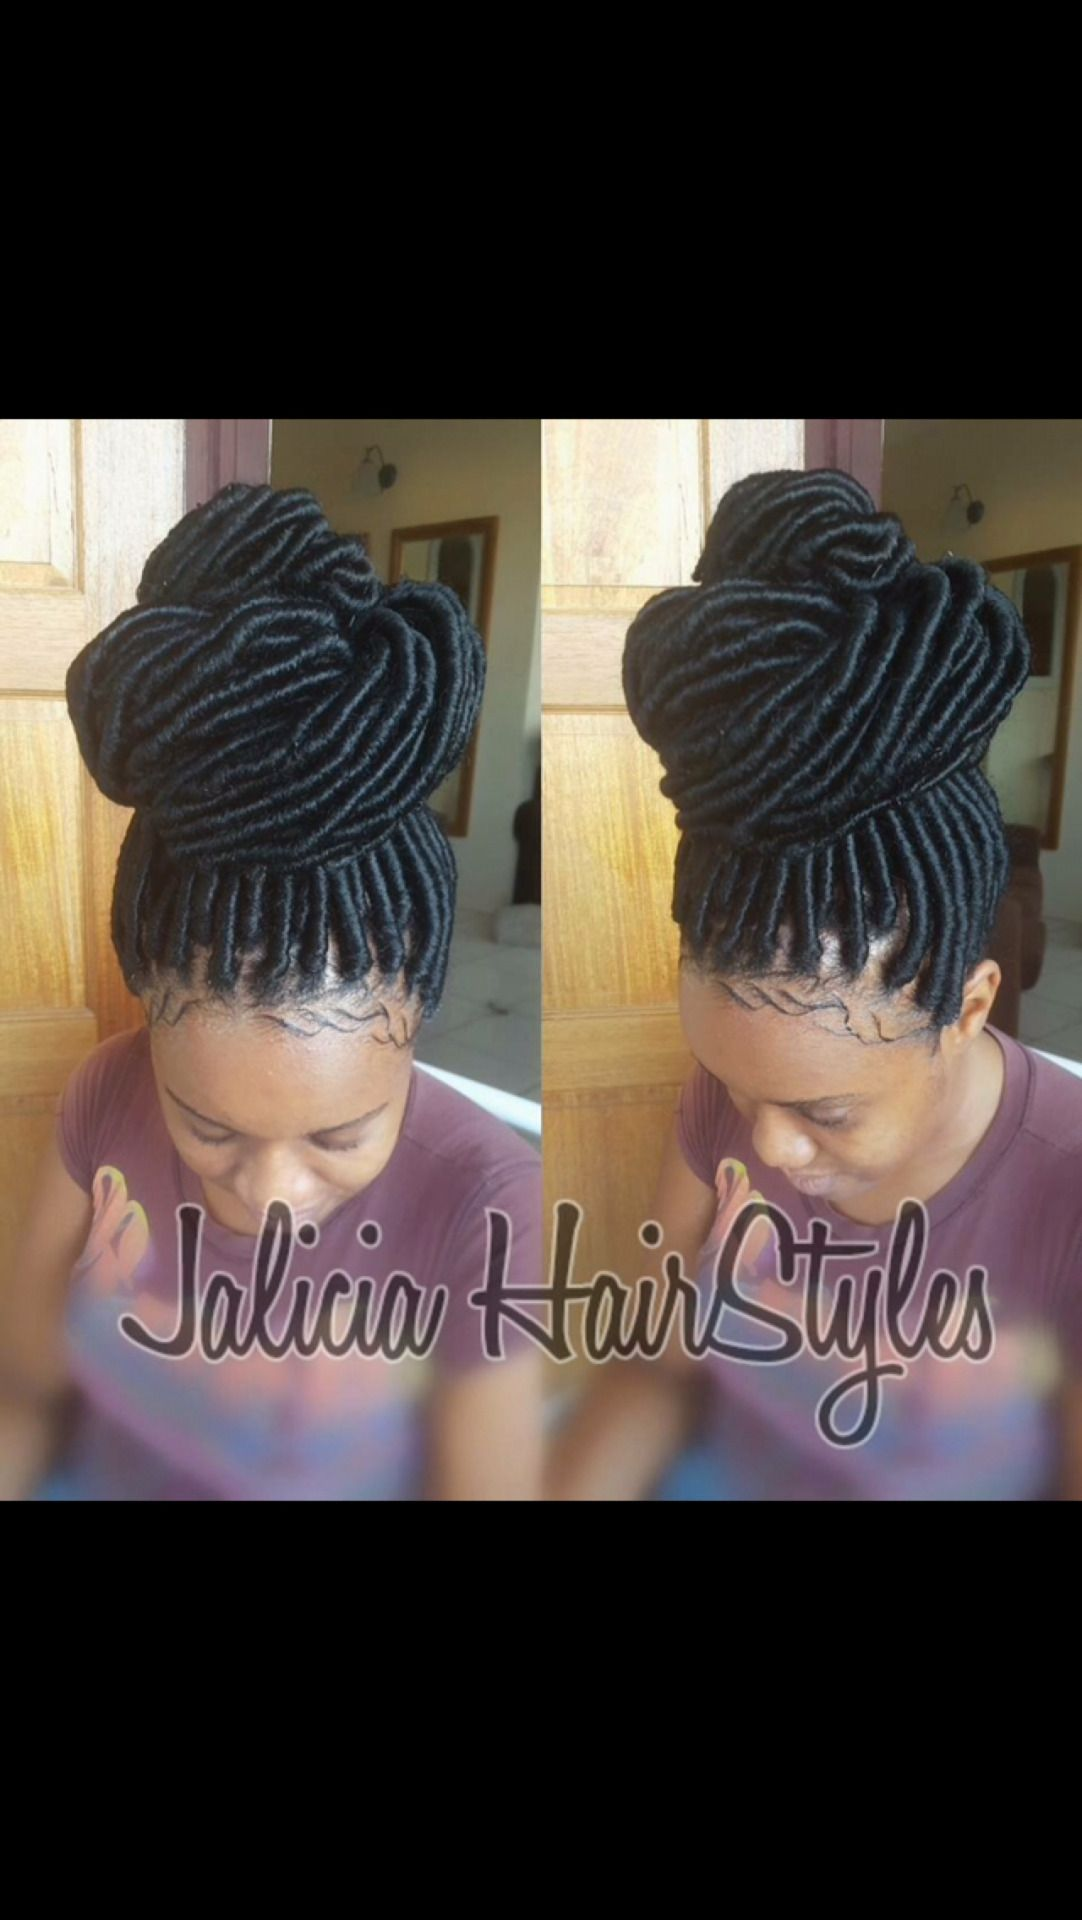 Cabuzz Really Thinking About Getting Faux Locs Hair Styles Faux Locs Hairstyles Locs Hairstyles